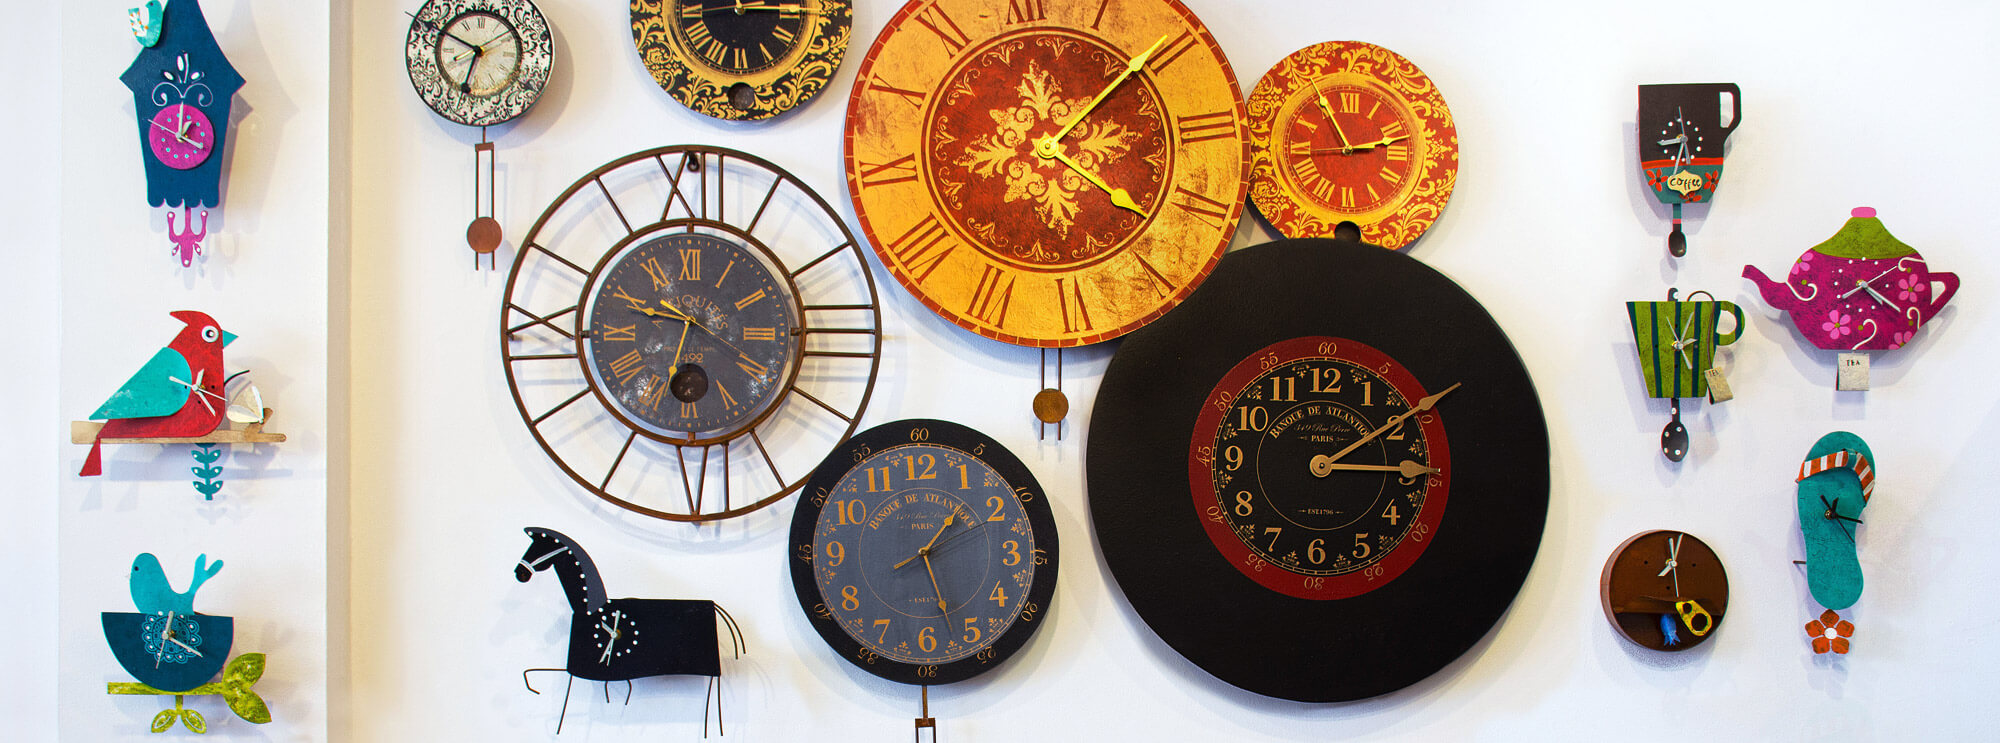 Óxidos Clocks